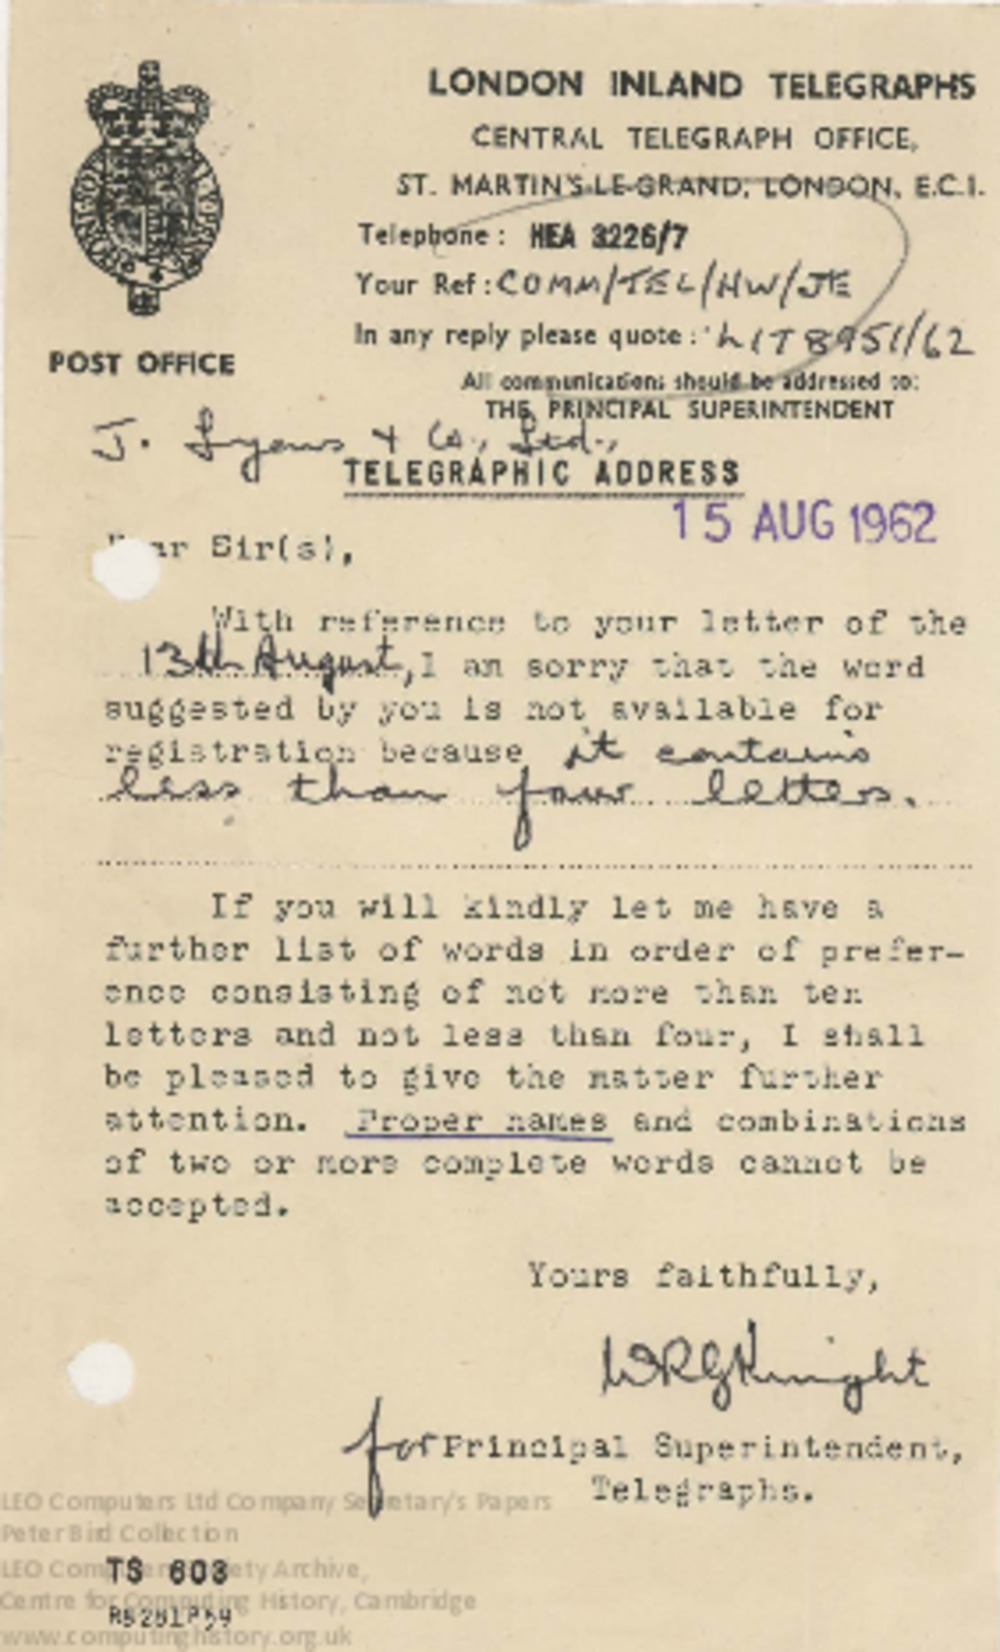 Article: 62869 Telegraph Address for LEO Computers Ltd, August 1962-January 1963